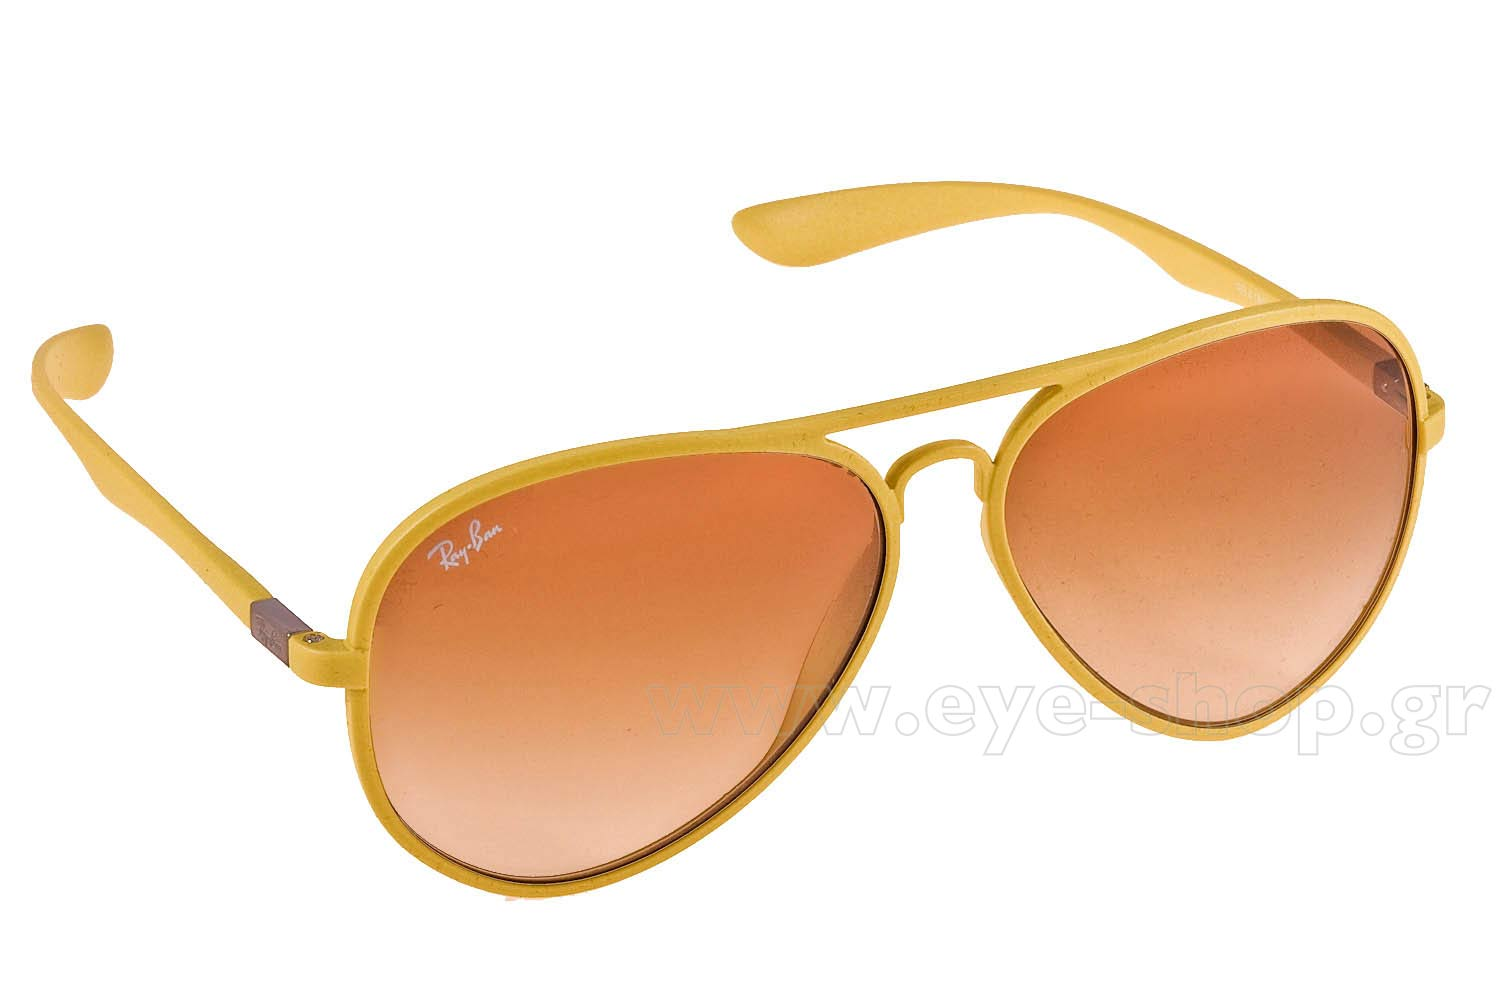 9e7e0a8e0f4 inexpensive ray ban rb4180 liteforce 881 13 sunglasses 99461 cfebe  hot  aviator color yellow resin lenses brown gradient organic plastic. enlarge  colors ...